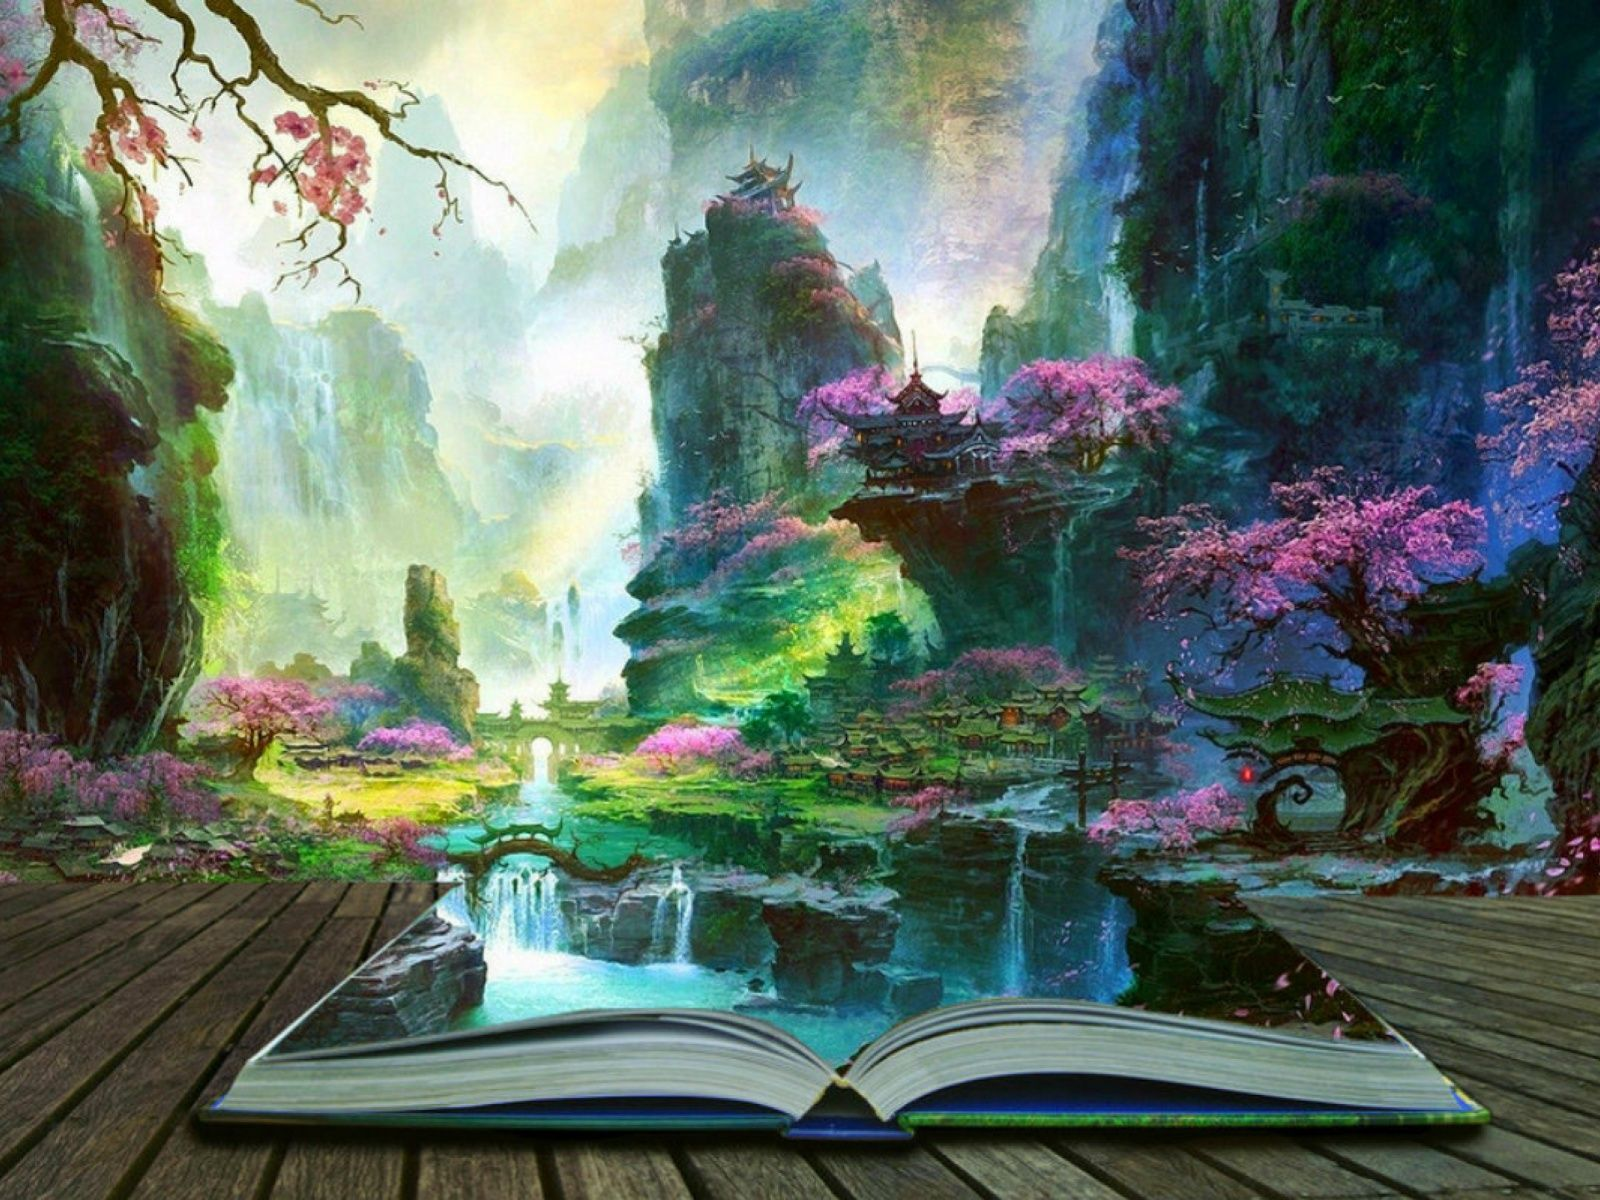 Chinese Book Island In 2020 Fantasy Landscape Background Images Wallpapers Landscape Paintings